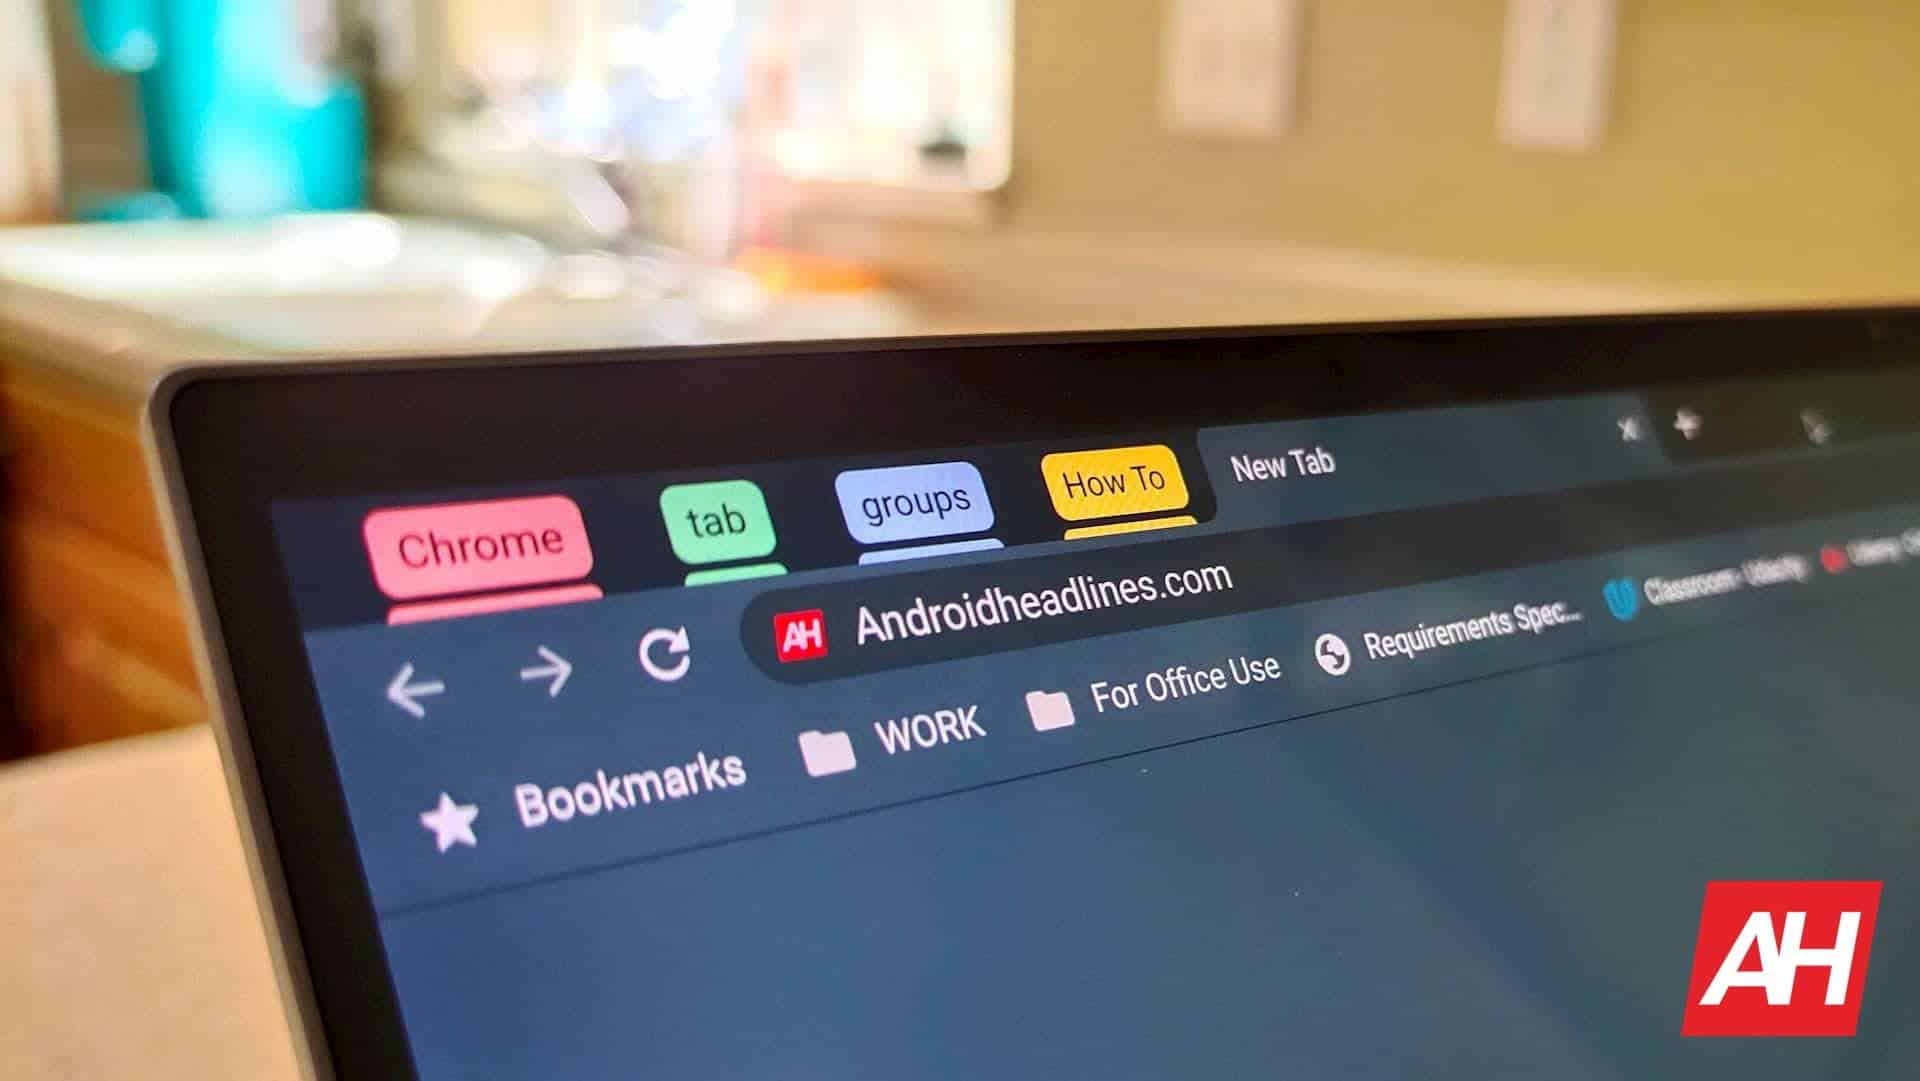 Google wants to add a More menu for sharing via the omnibox Chrome